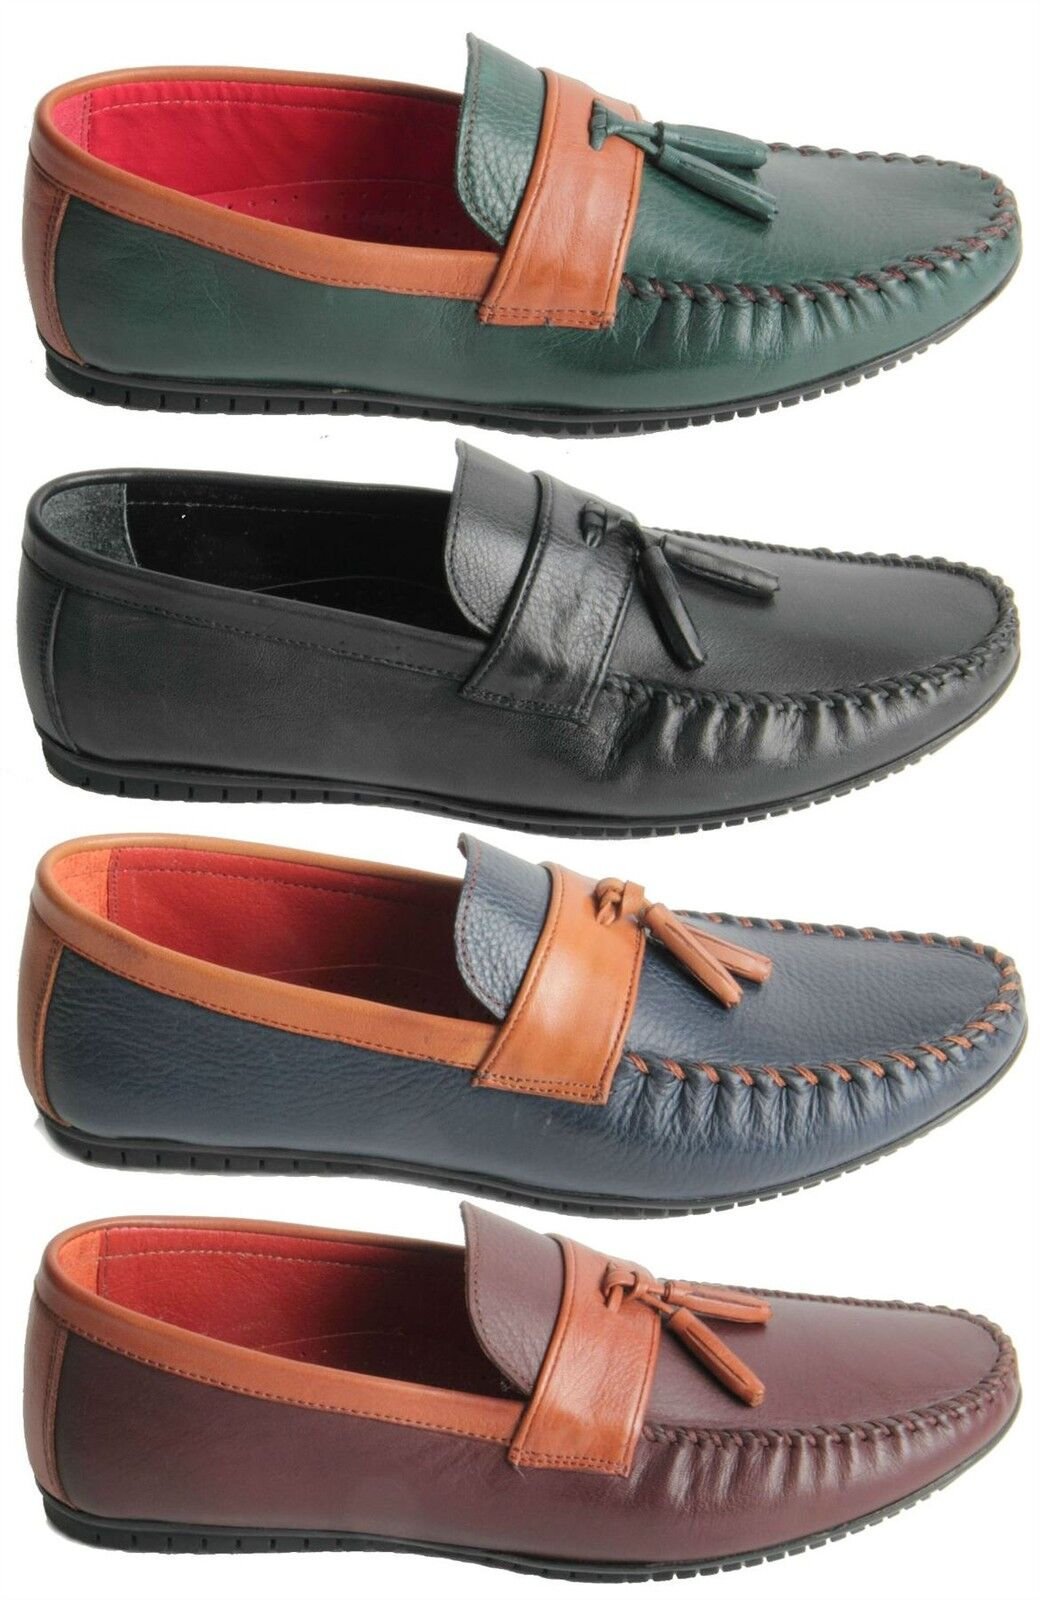 Mens Genuine Leather Slip On Loafers Heavy Stitched Tassel Toe Shoes